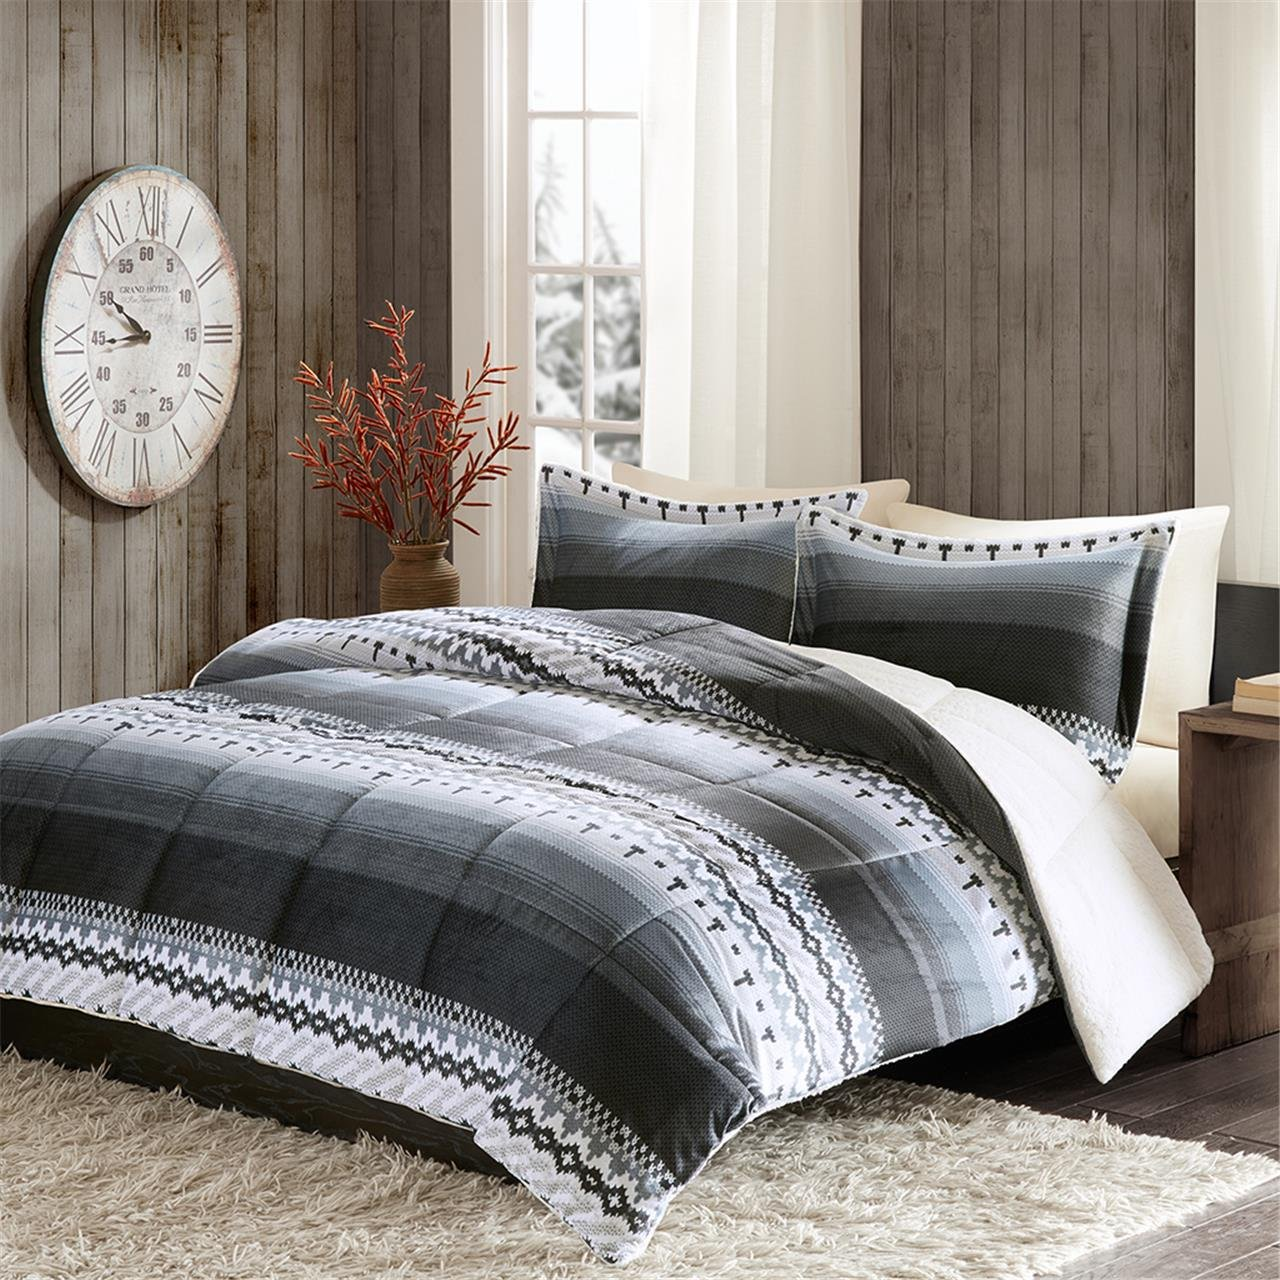 Print Mink to Berber Comforter Mini Set Charcoal King